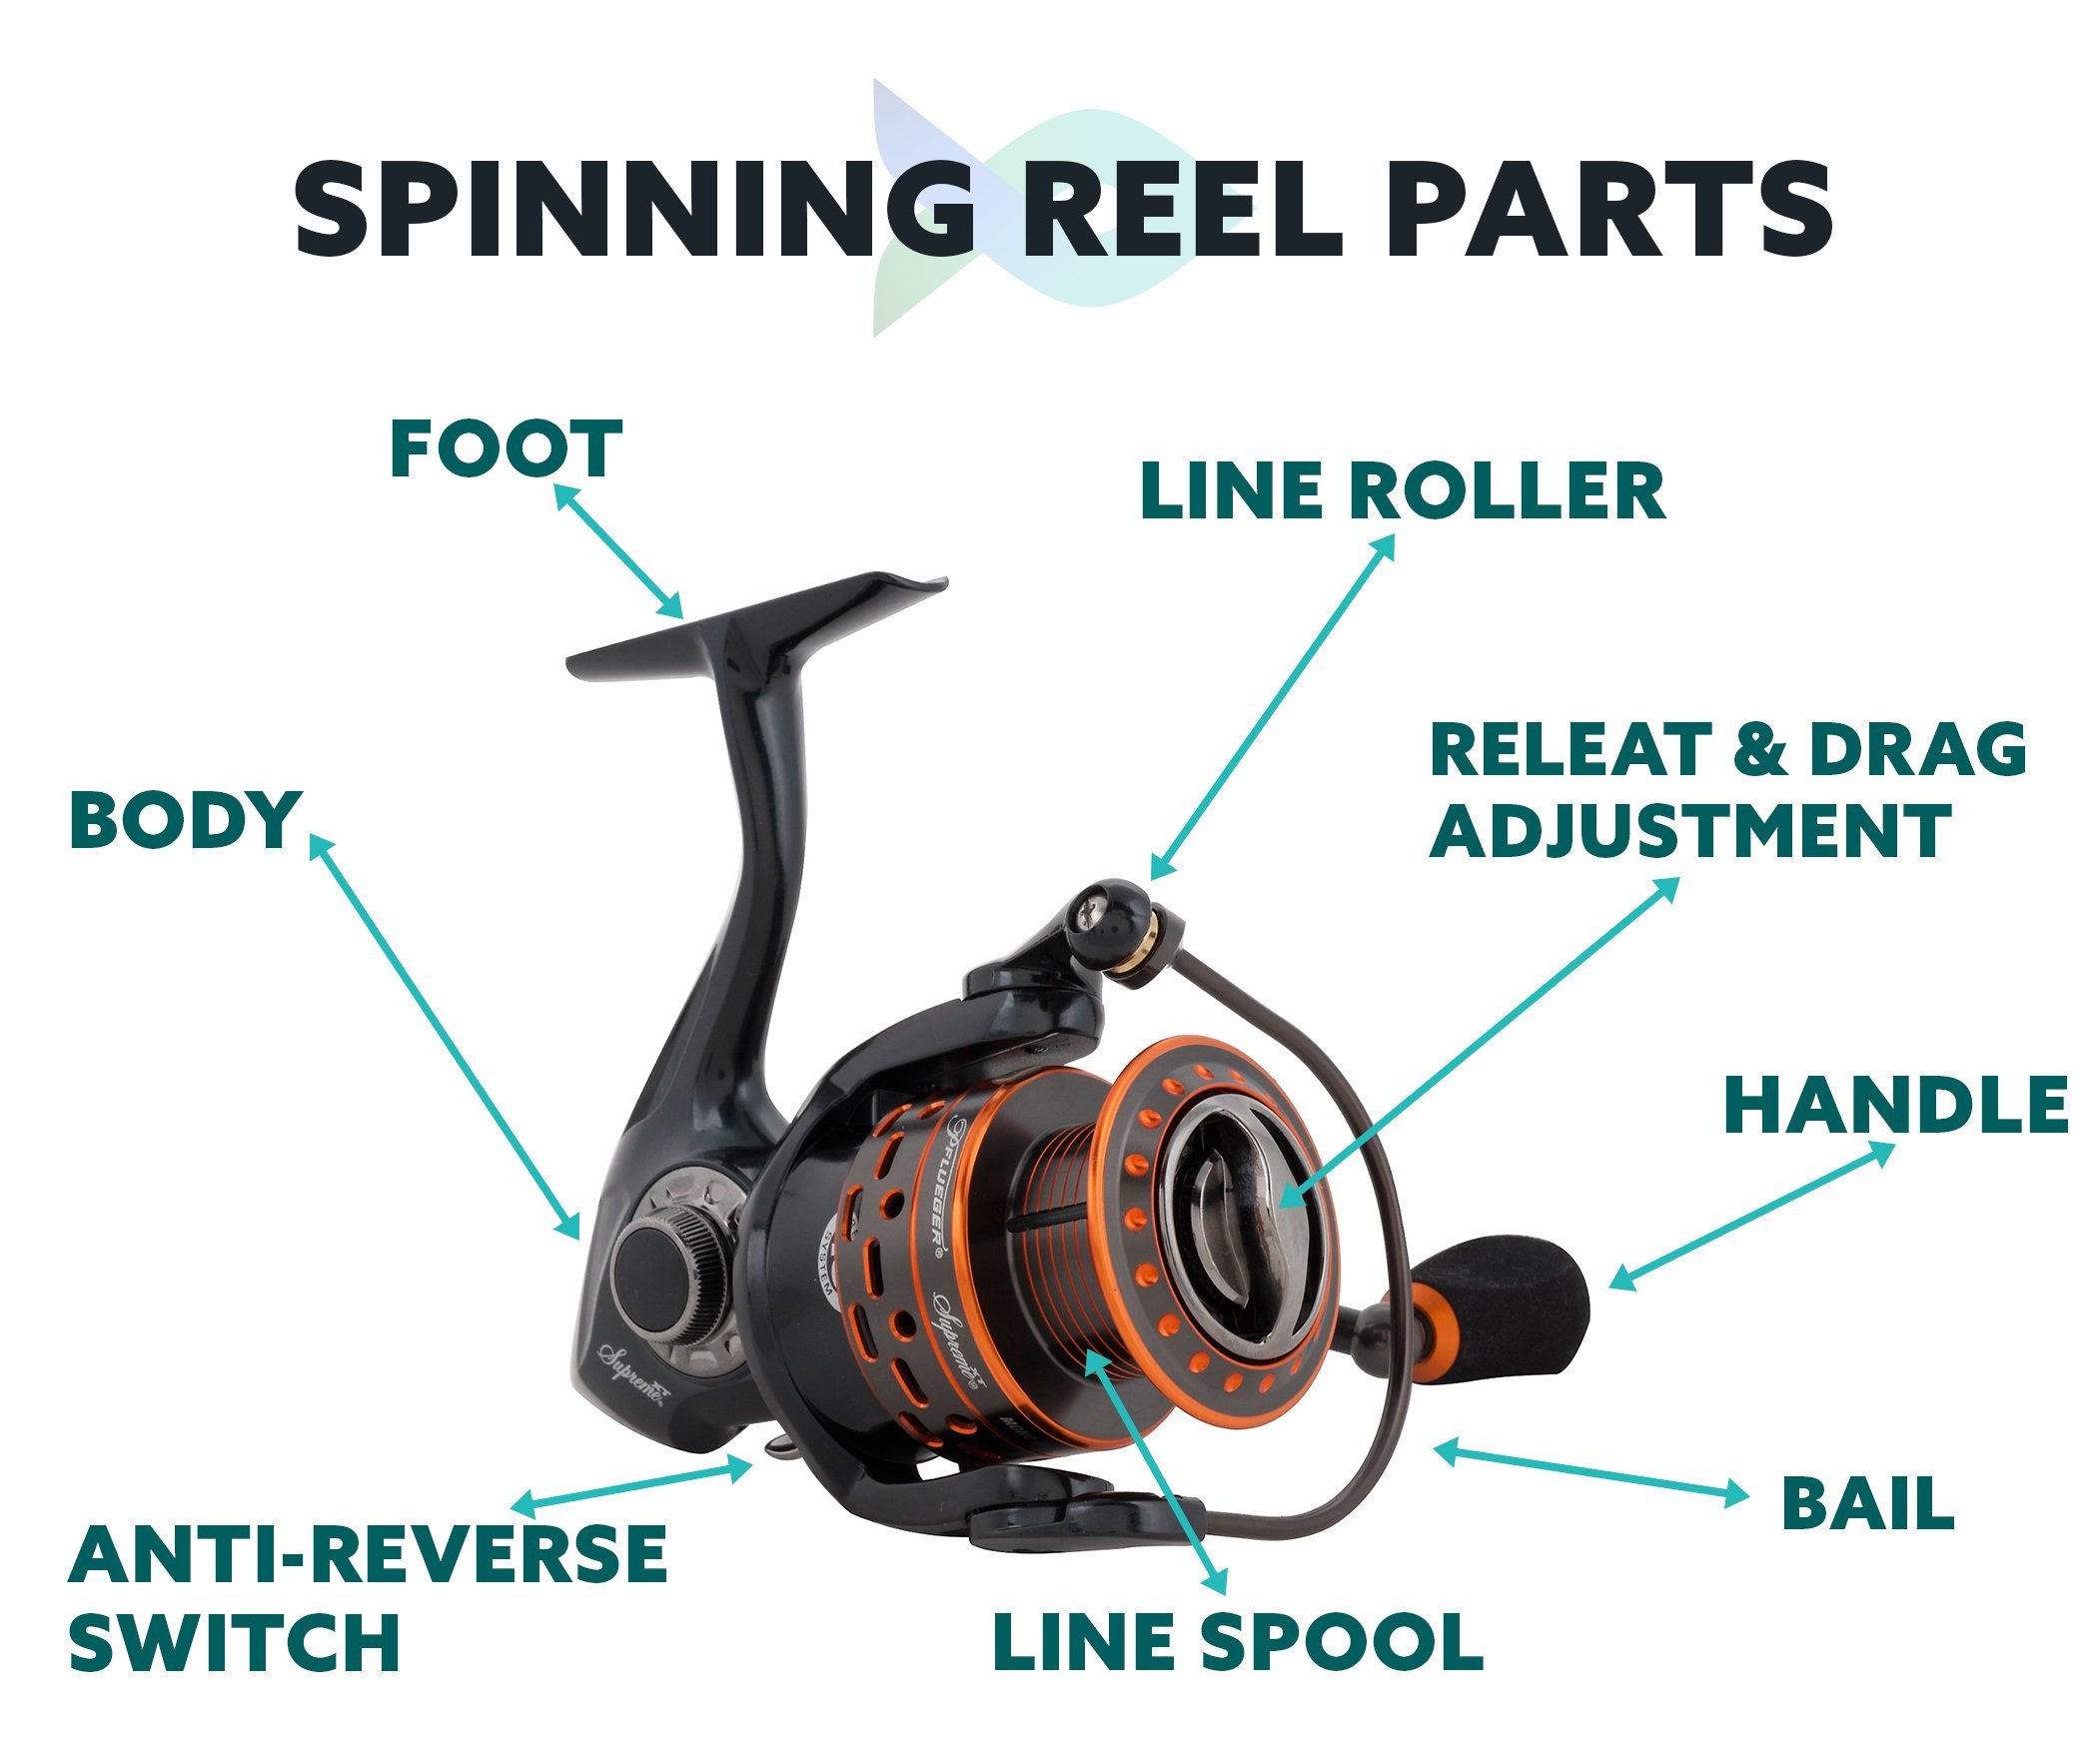 Spinning Reel Parts Infographic